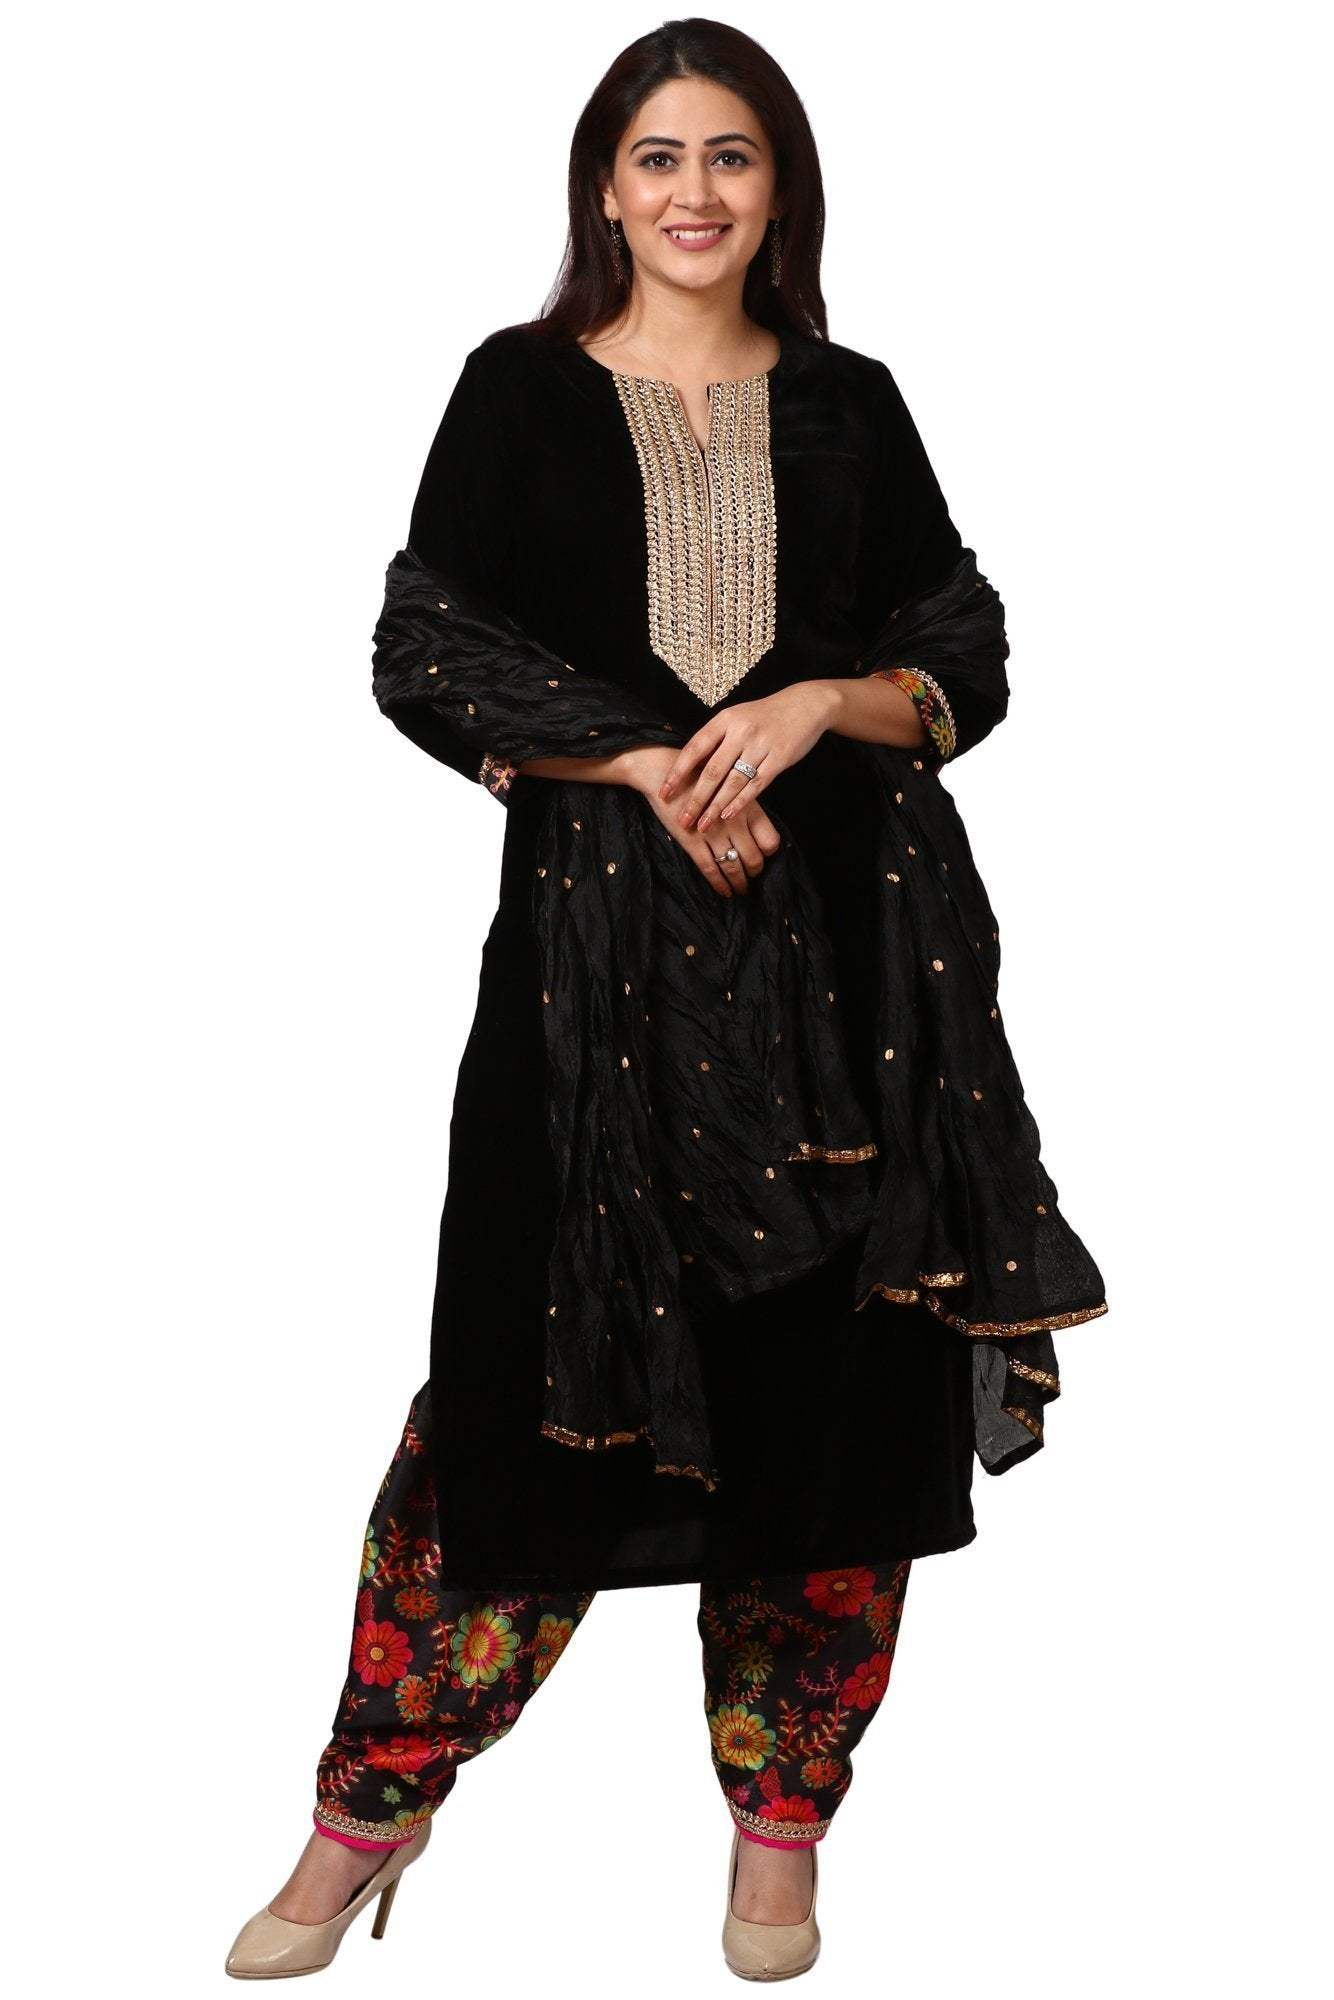 ab84075a97 Home > Products > Black Gold Velvet Kurti with Floral Printed Salwar and  Black Crushed Dupatta. anokherang ...